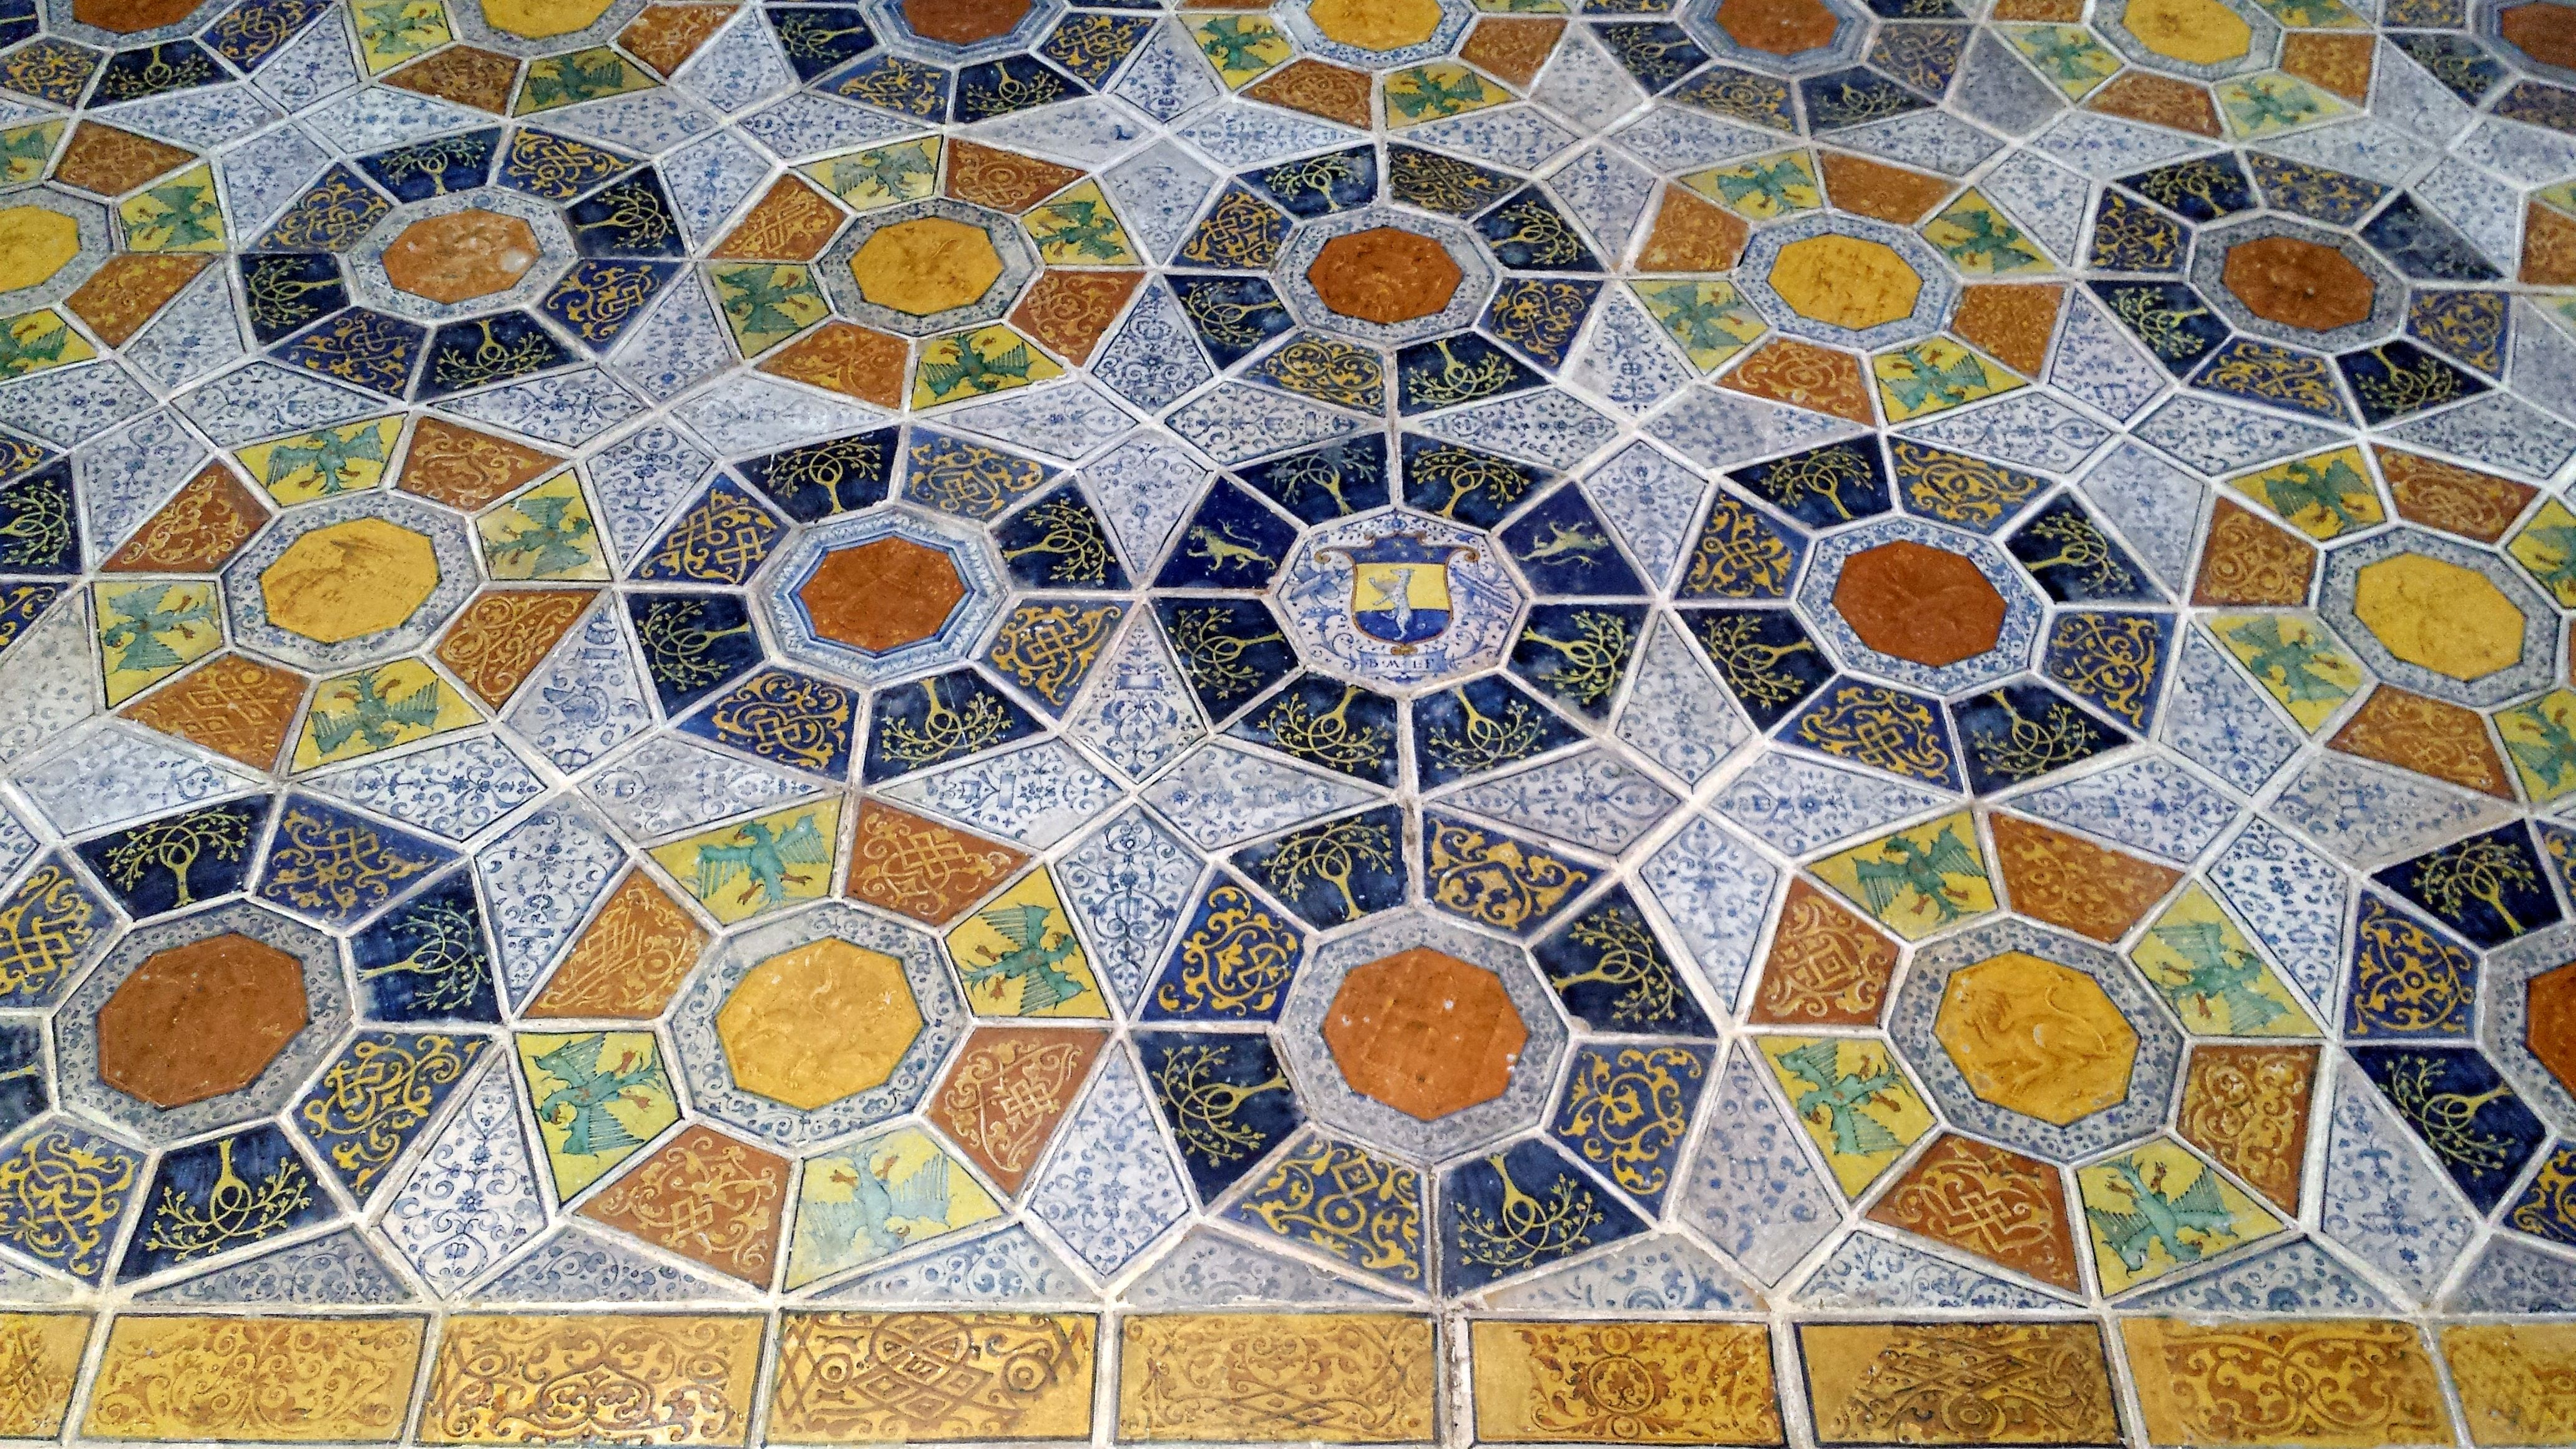 Va museum london a detail of the ceramic tile floor of the church va museum london a detail of the ceramic tile floor of the church of san francesco dailygadgetfo Images